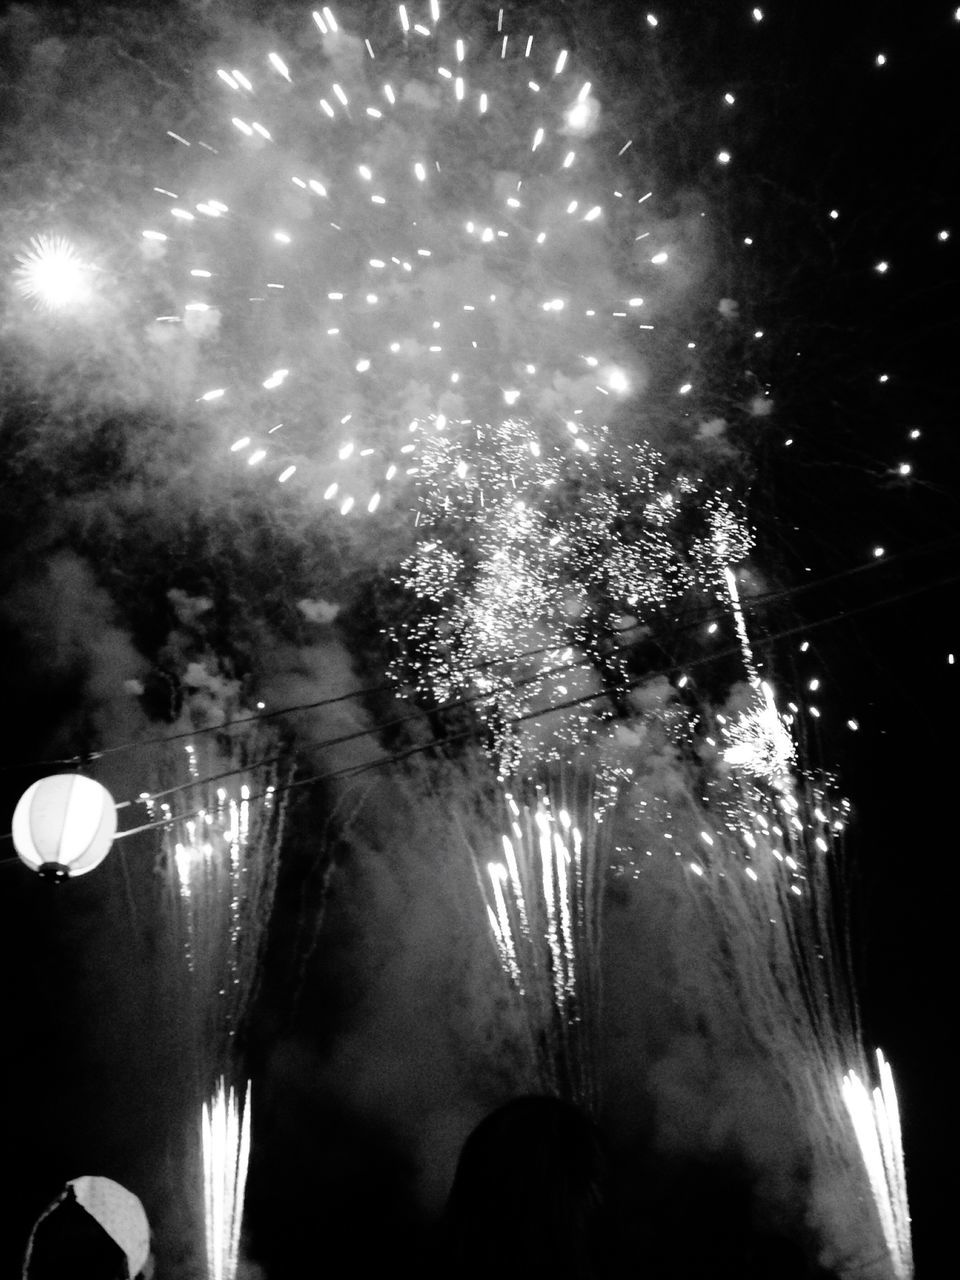 night, illuminated, celebration, firework display, glowing, lighting equipment, low angle view, firework - man made object, event, exploding, arts culture and entertainment, long exposure, firework, motion, no people, sky, outdoors, tree, close-up